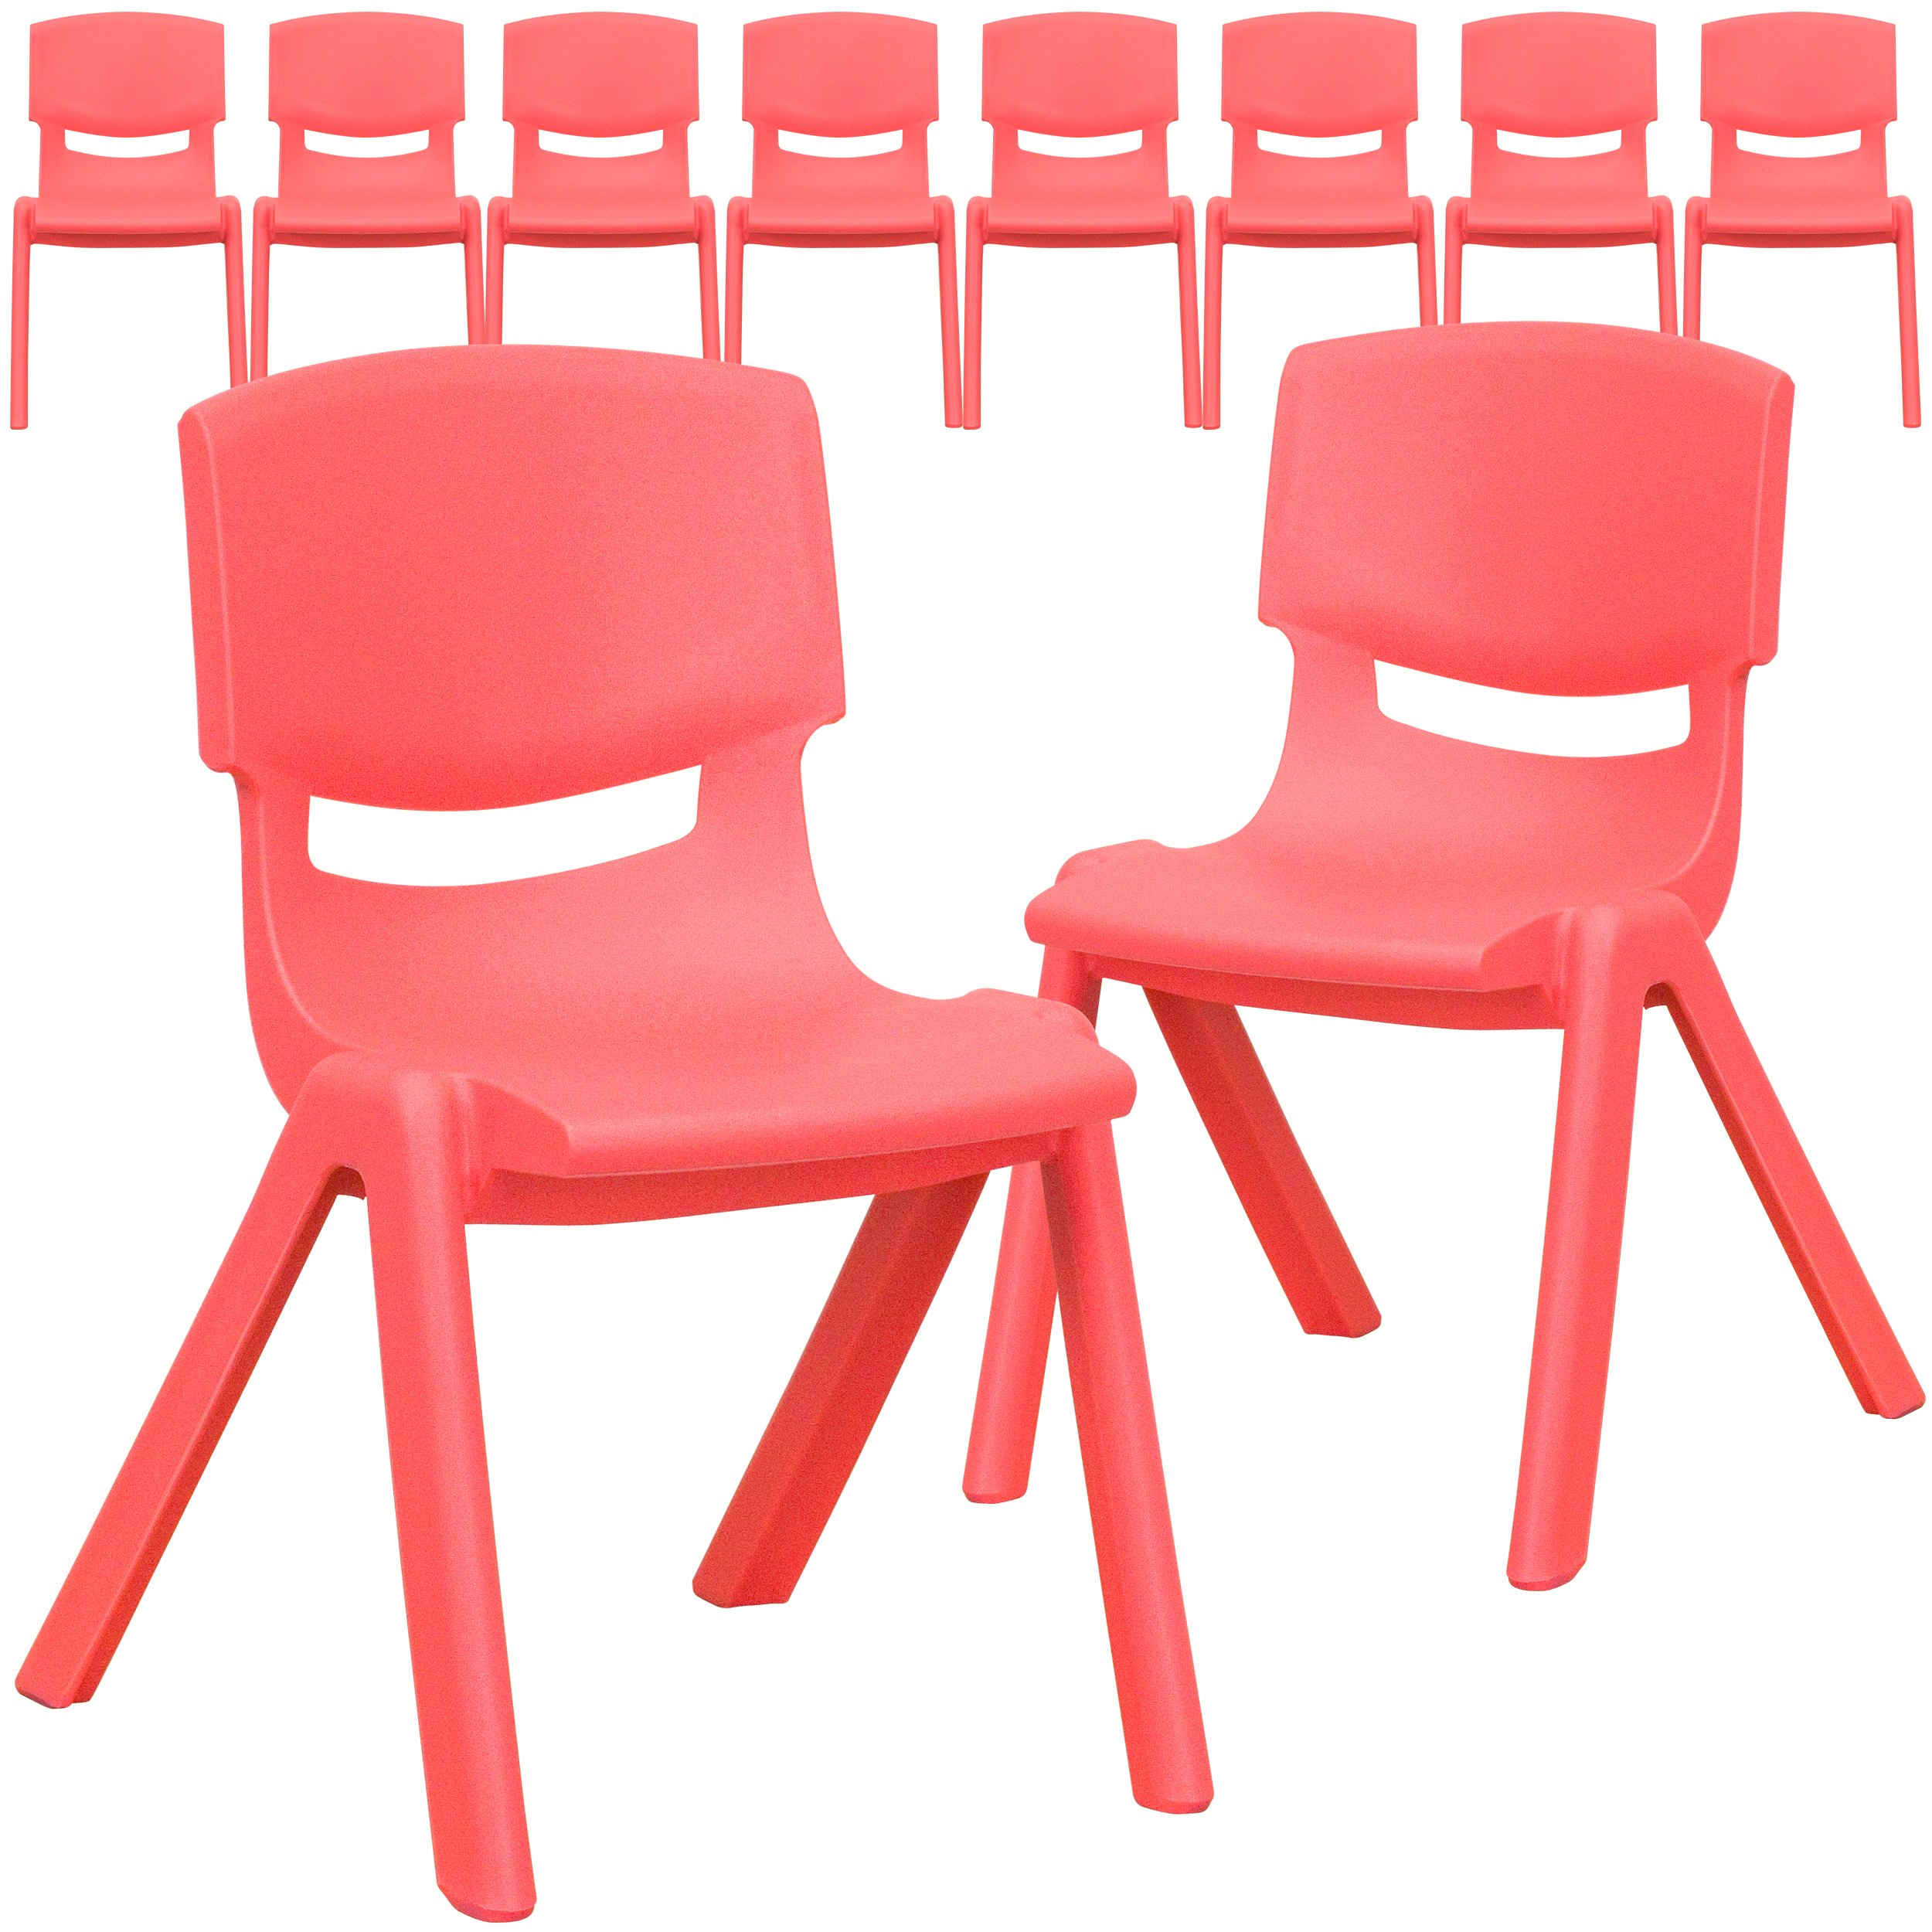 Flash Furniture 10 Pk. Red Plastic Stackable School Chair with 12'' Seat Height